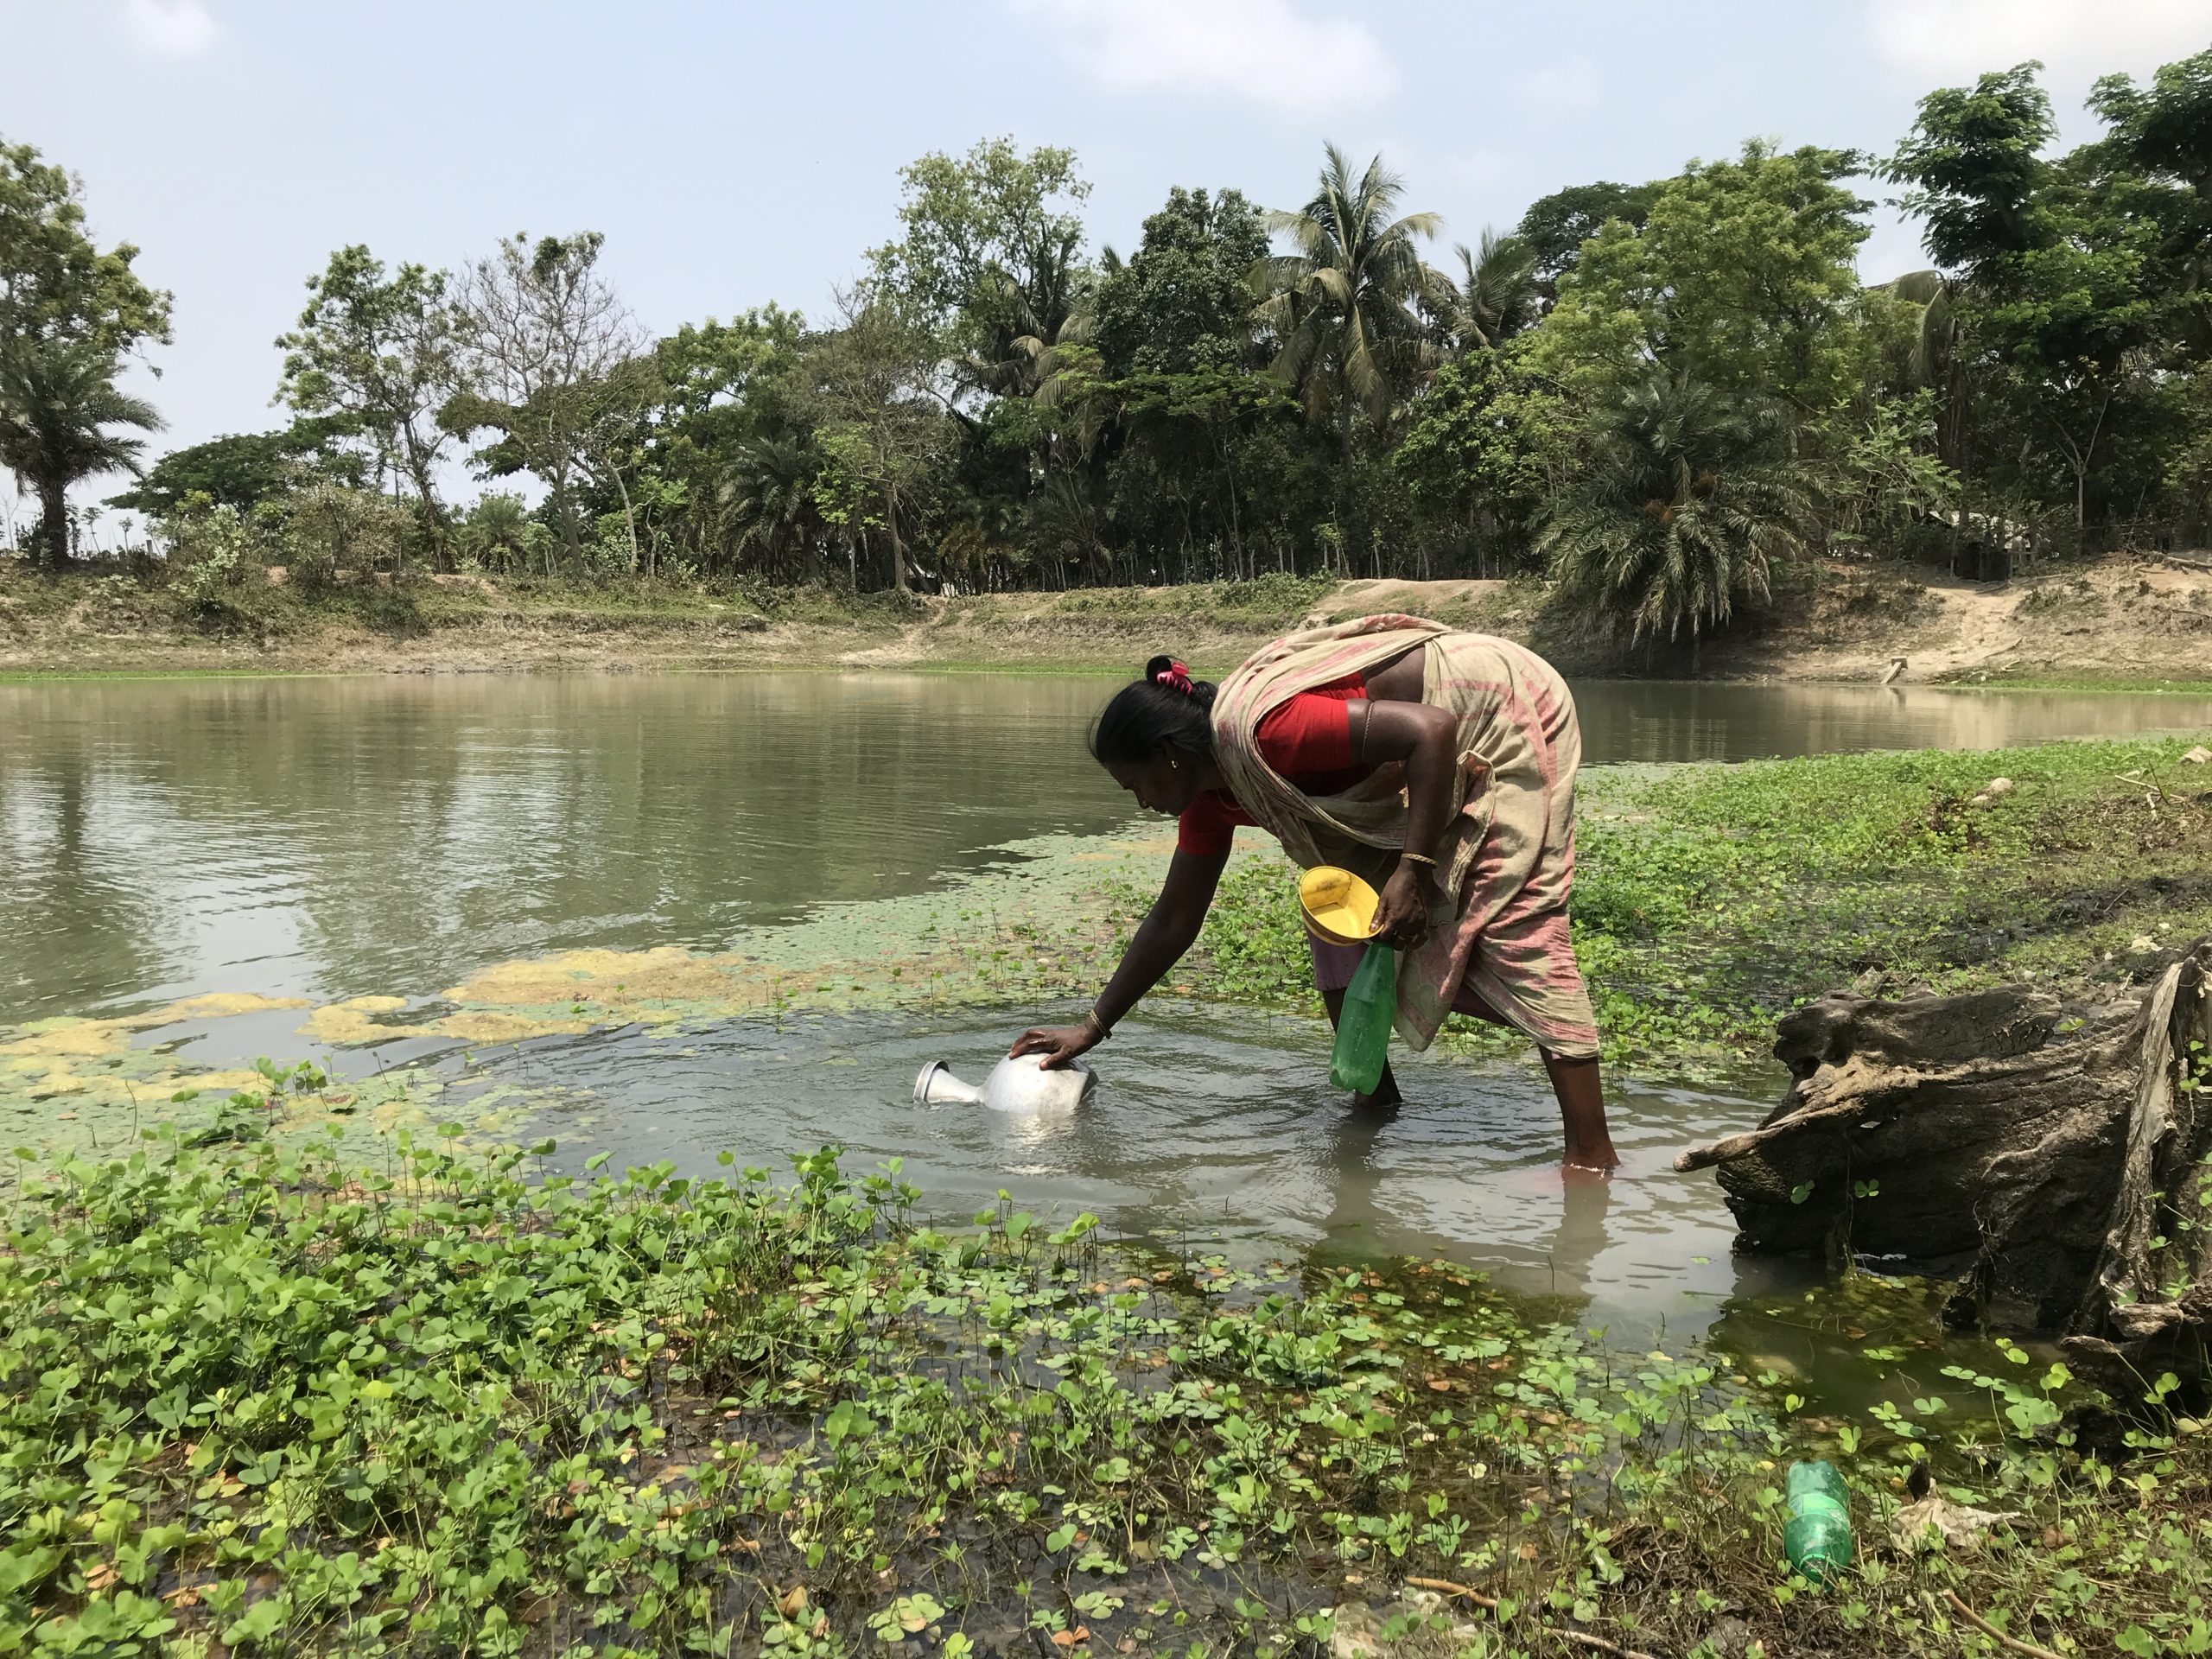 A woman is collecting water from a pond in rural Bangladesh